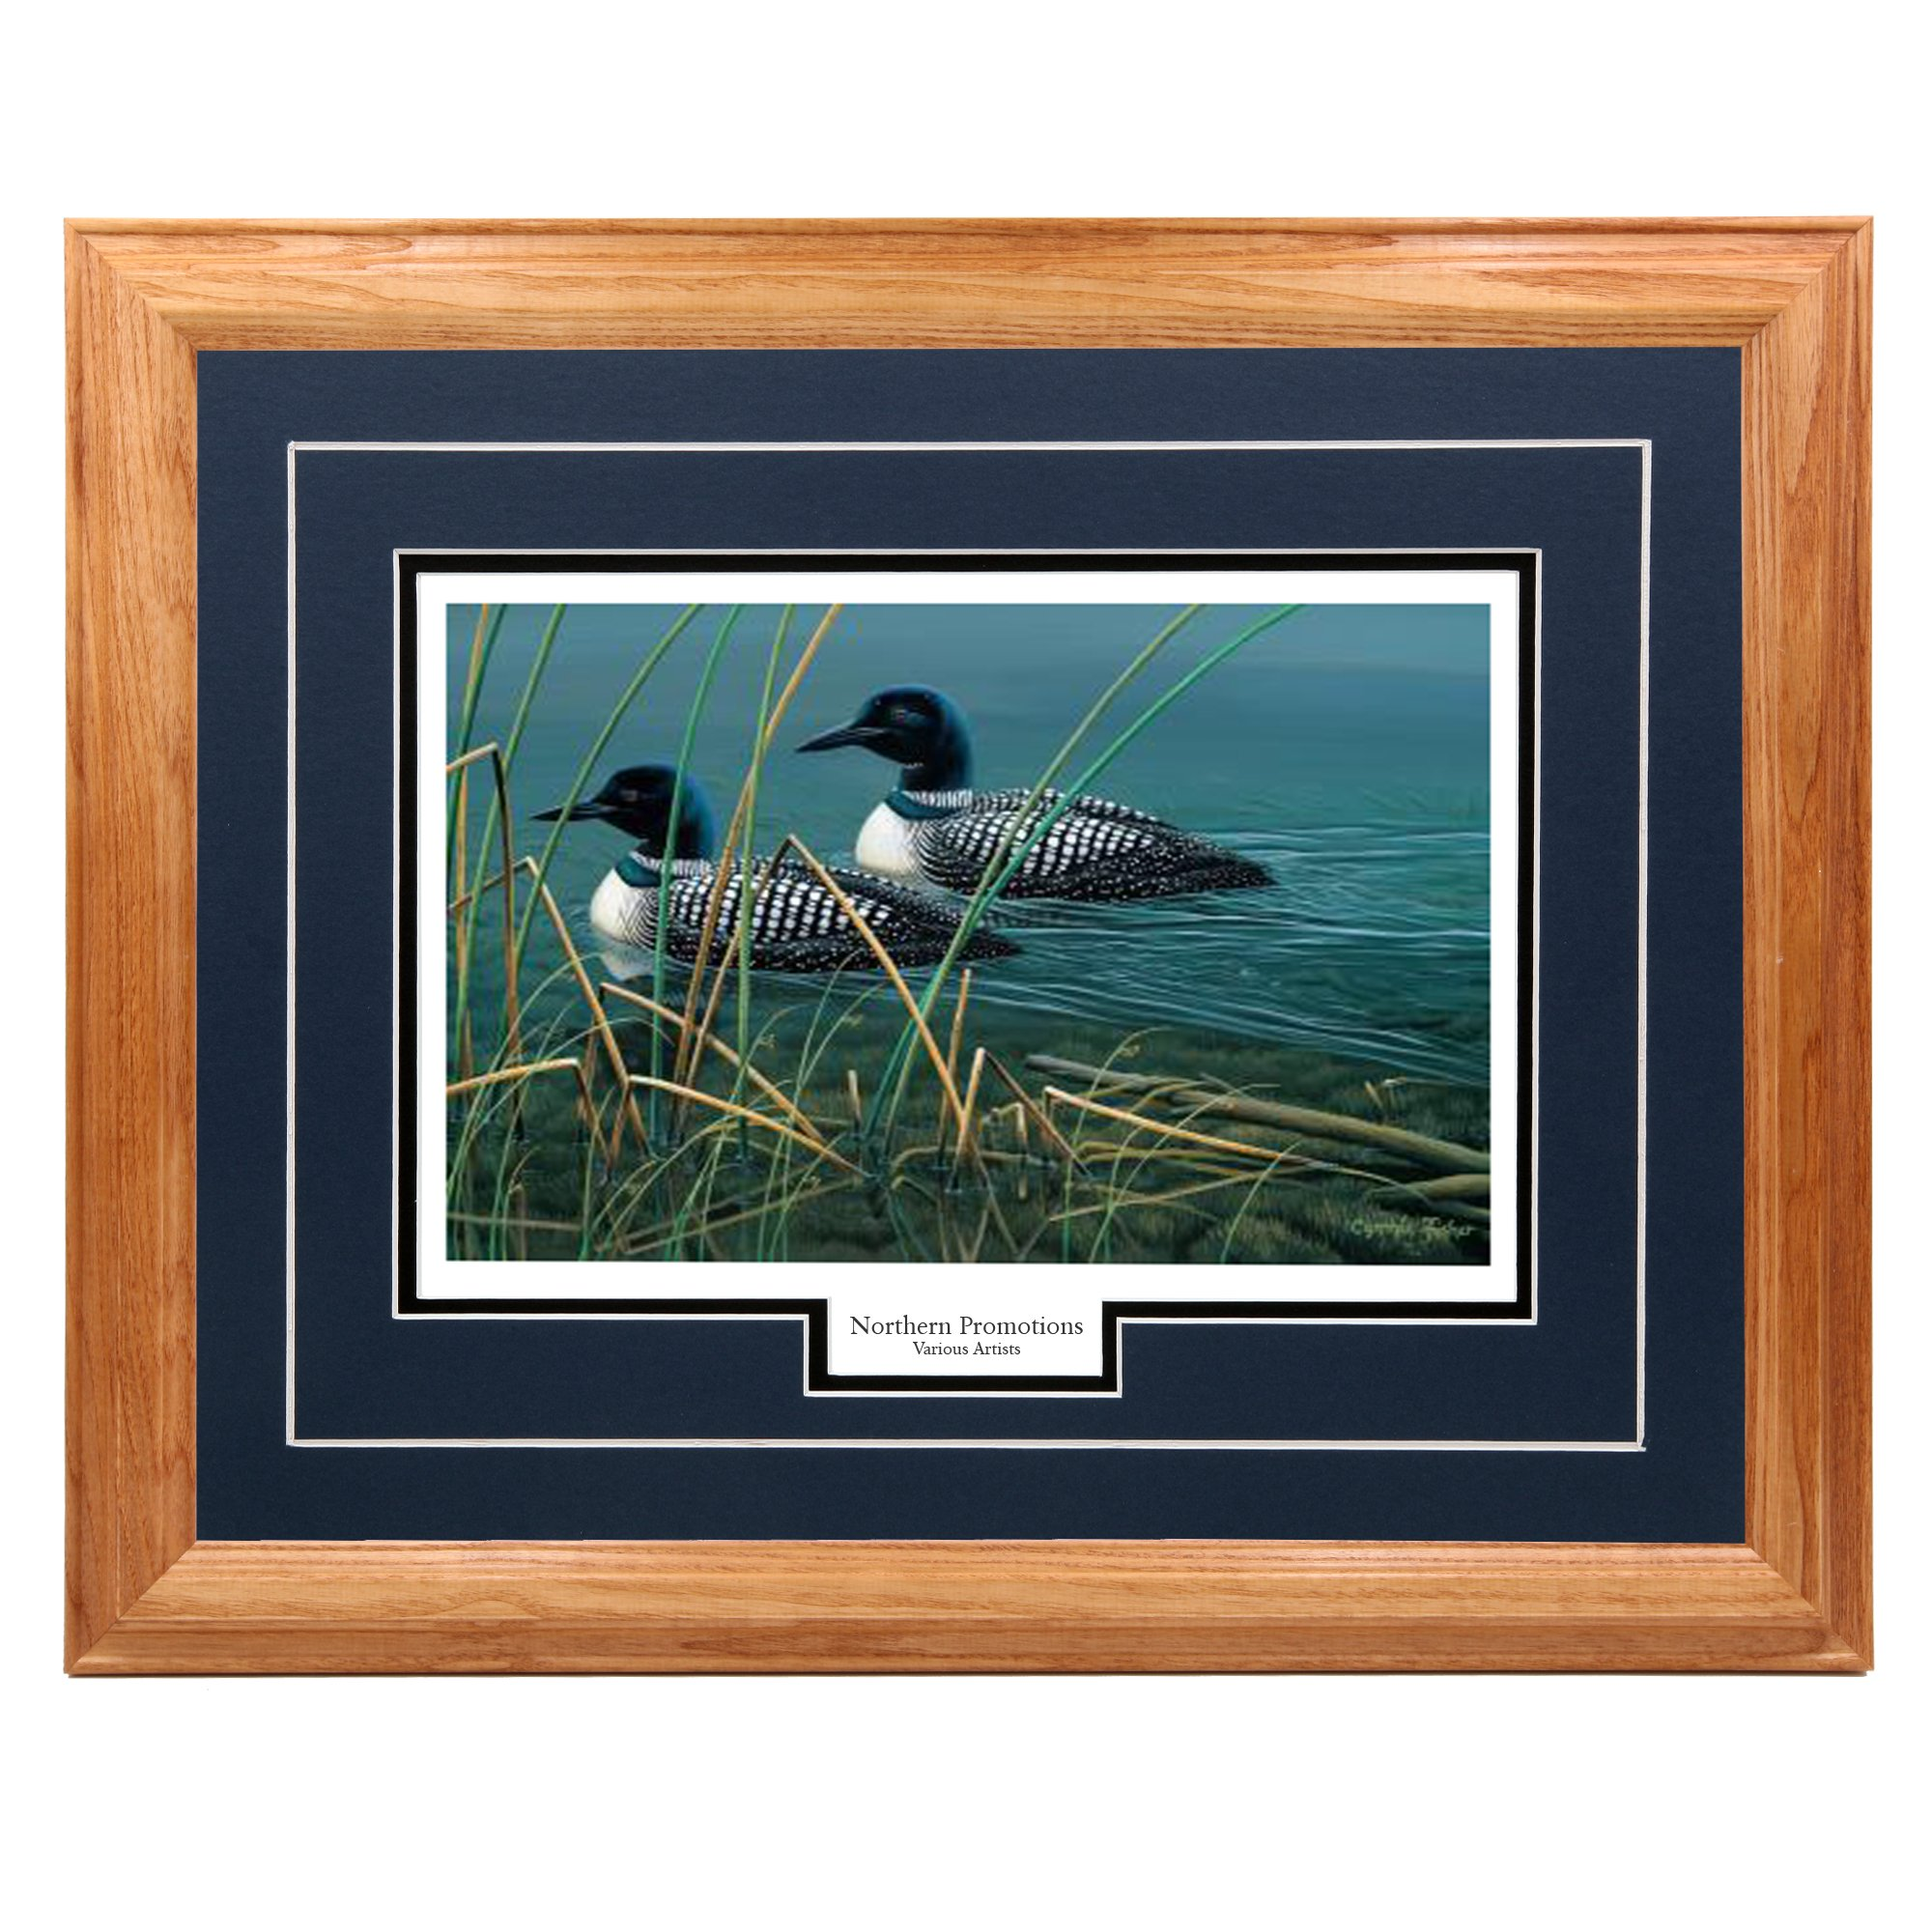 ''Together Always'' - Cynthie Fisher – Loons for Life and Nature Classic Wall Art Print for Home / Office / Hotel / Cabin / Gift, 17 x 21 in., Blue Mat / Light Oak Frame – More Frames Available